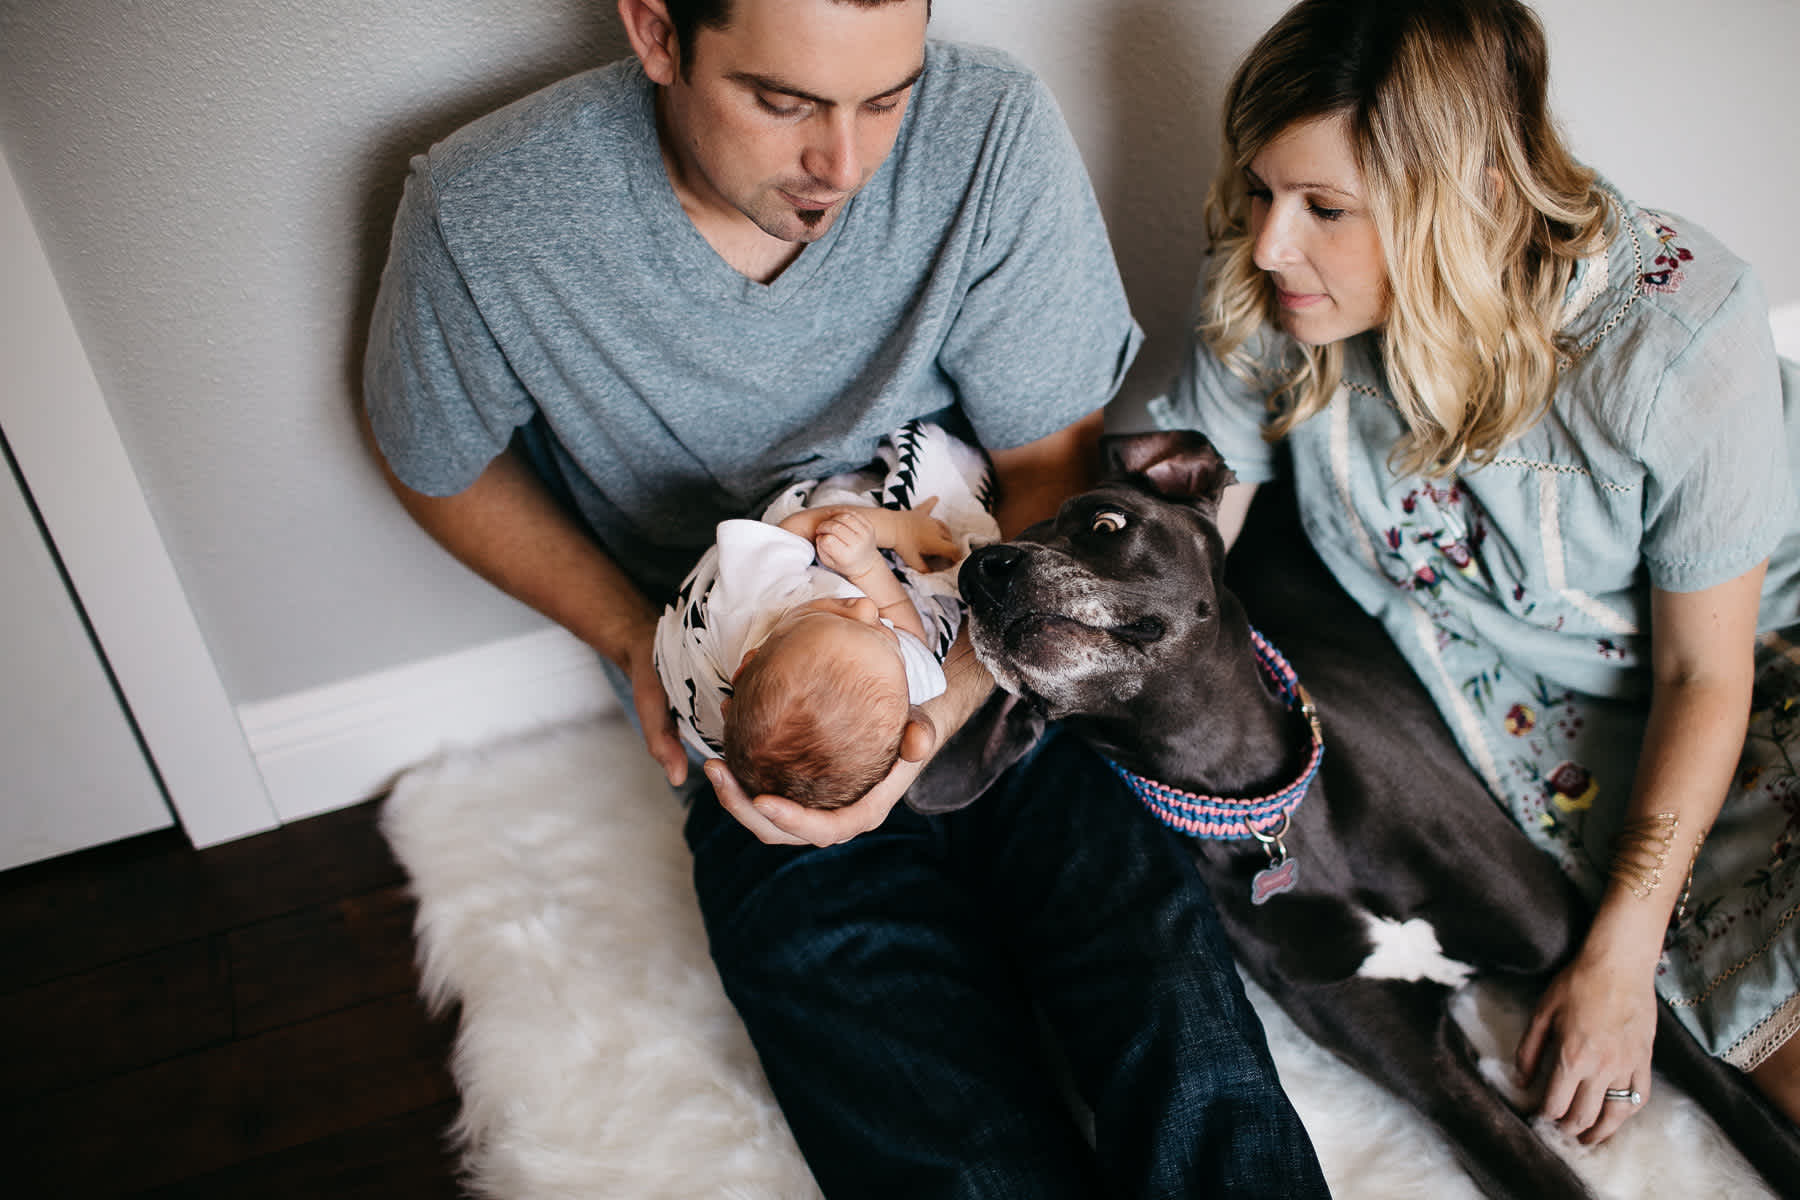 in-home-lifestyle-newborn-with-great-dane-dog-27